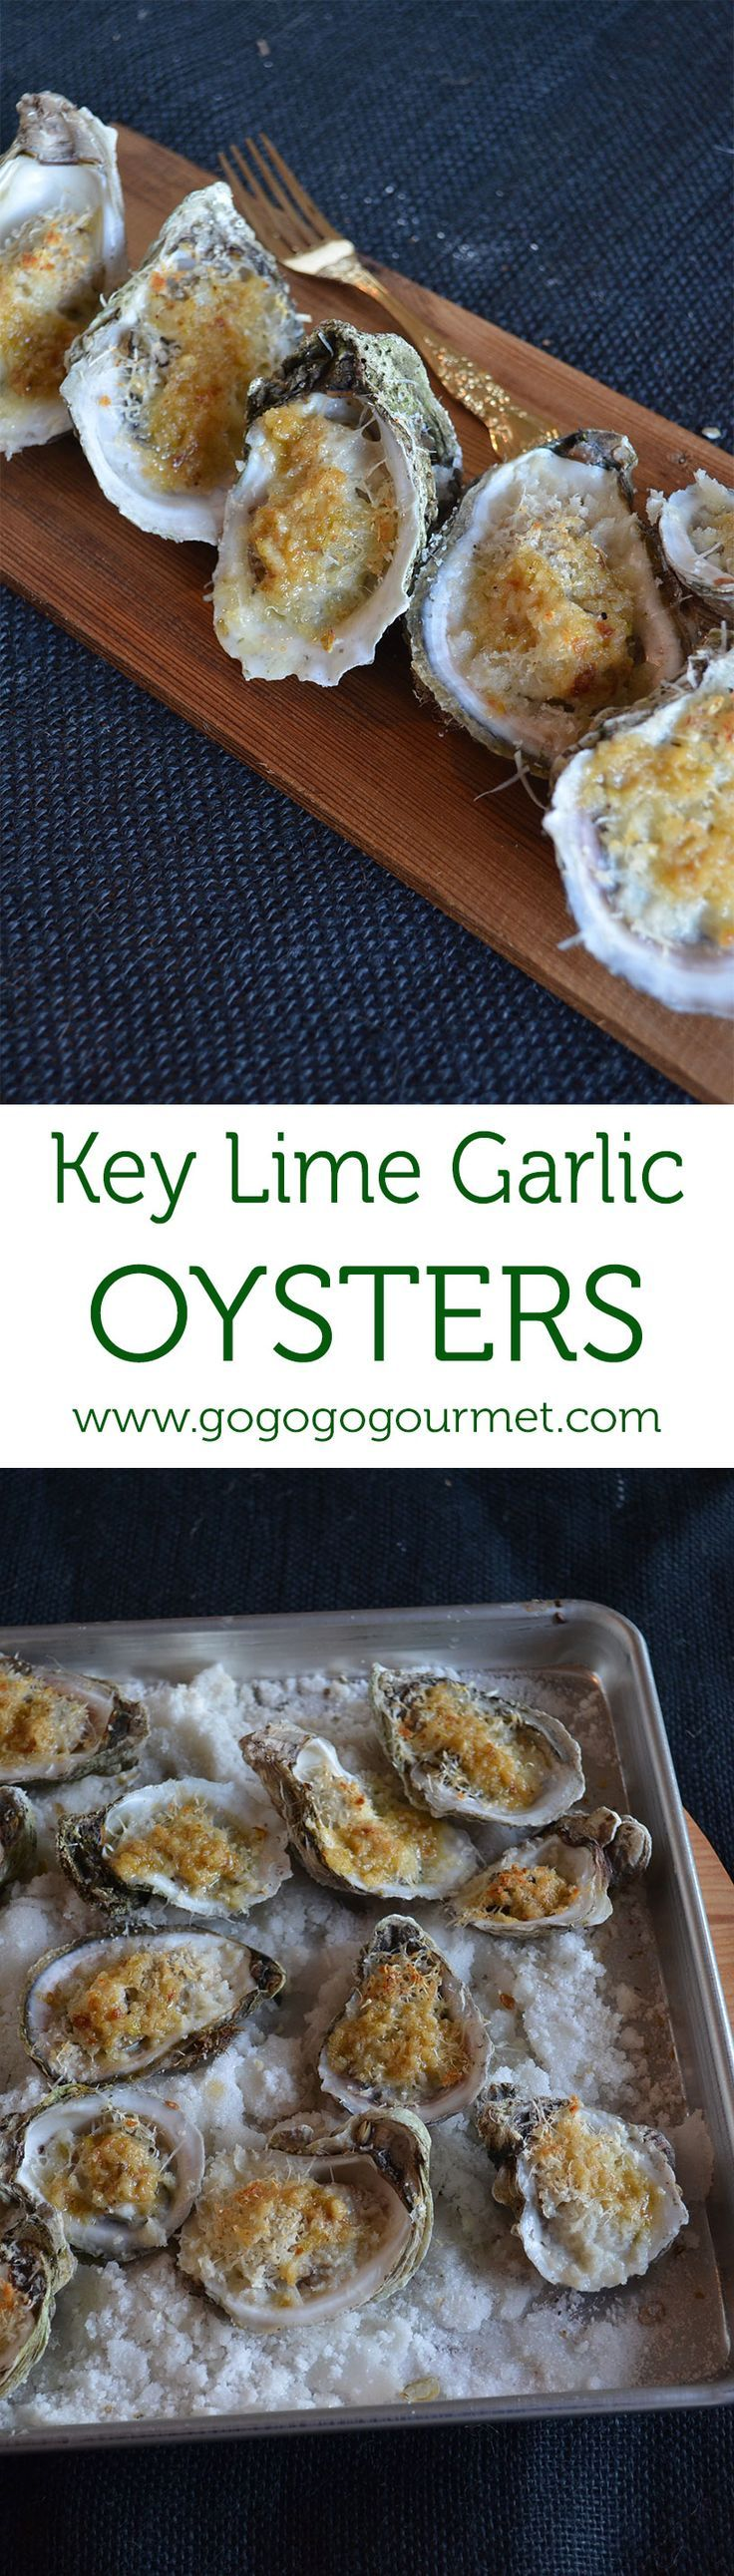 These Key Lime Garlic Oysters are full of citrus flavor, PLUS the baking makes them easier to shuck!   Go Go Go Gourmet @gogogogourmet